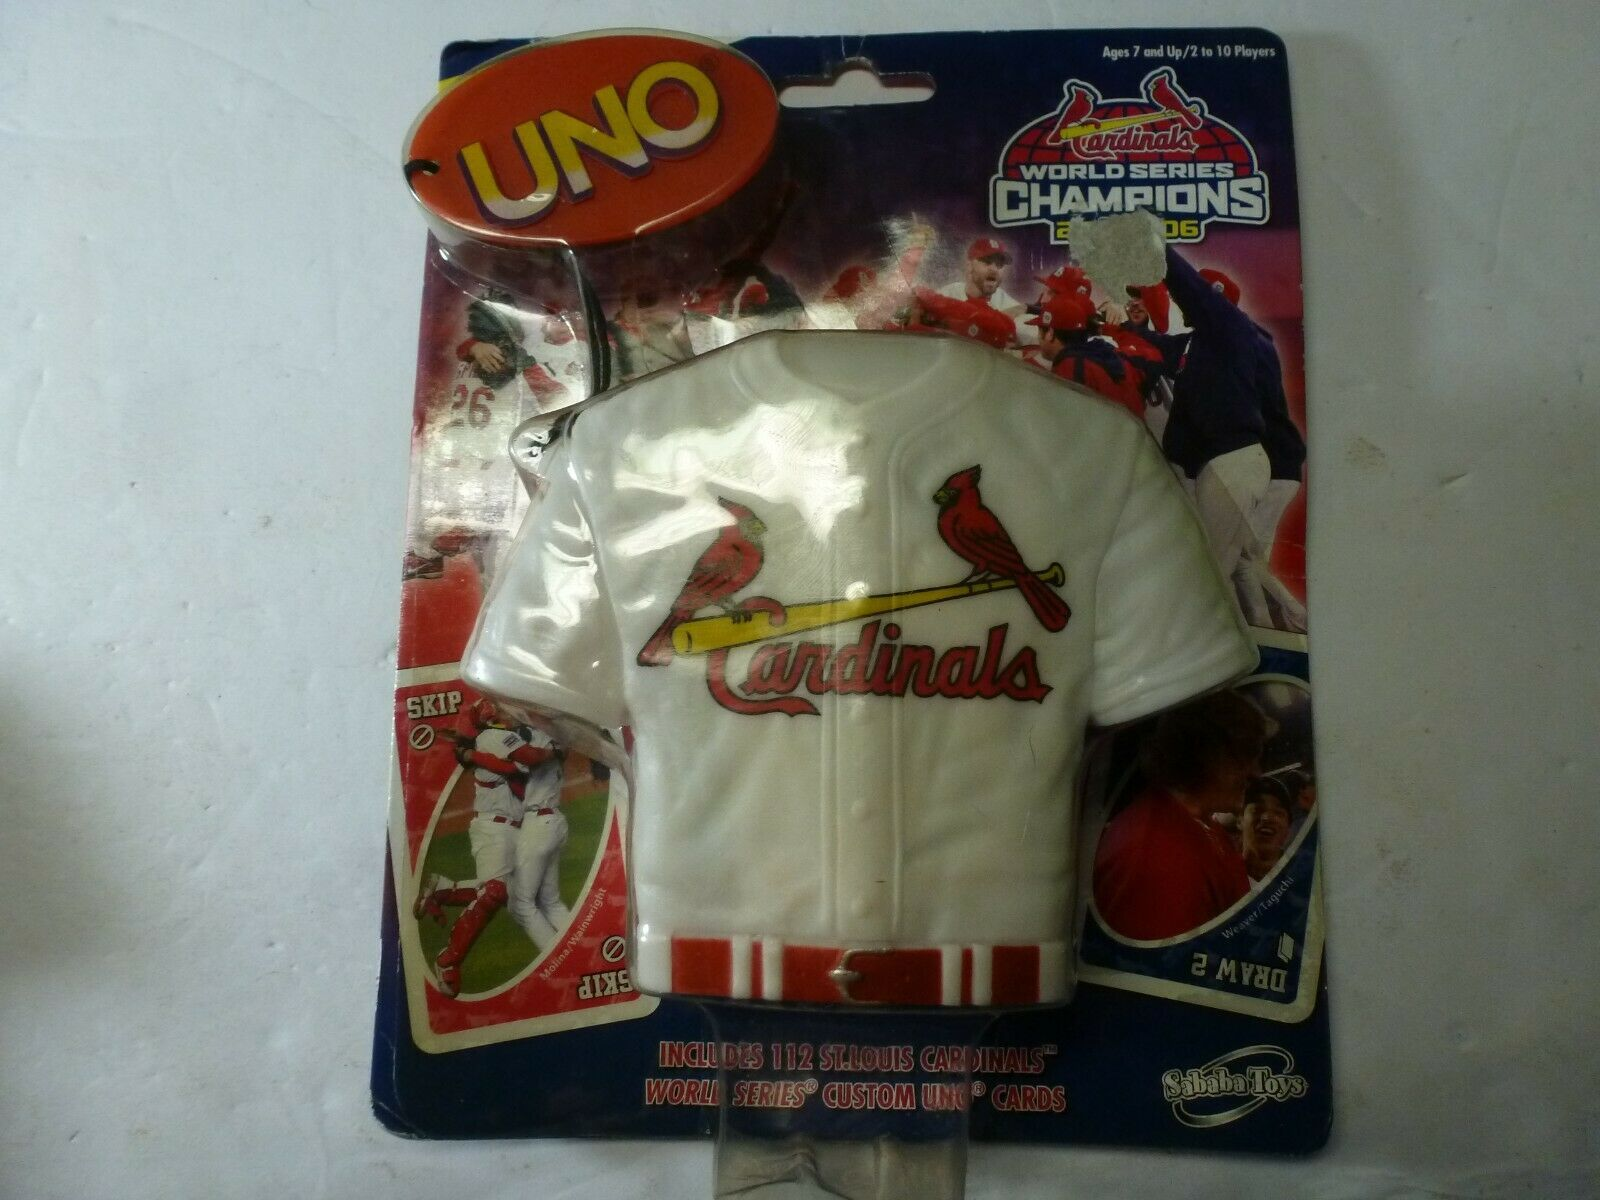 St Louis Cardinals World Series Champs 2006 Jersey UNO Card Game - $16.72